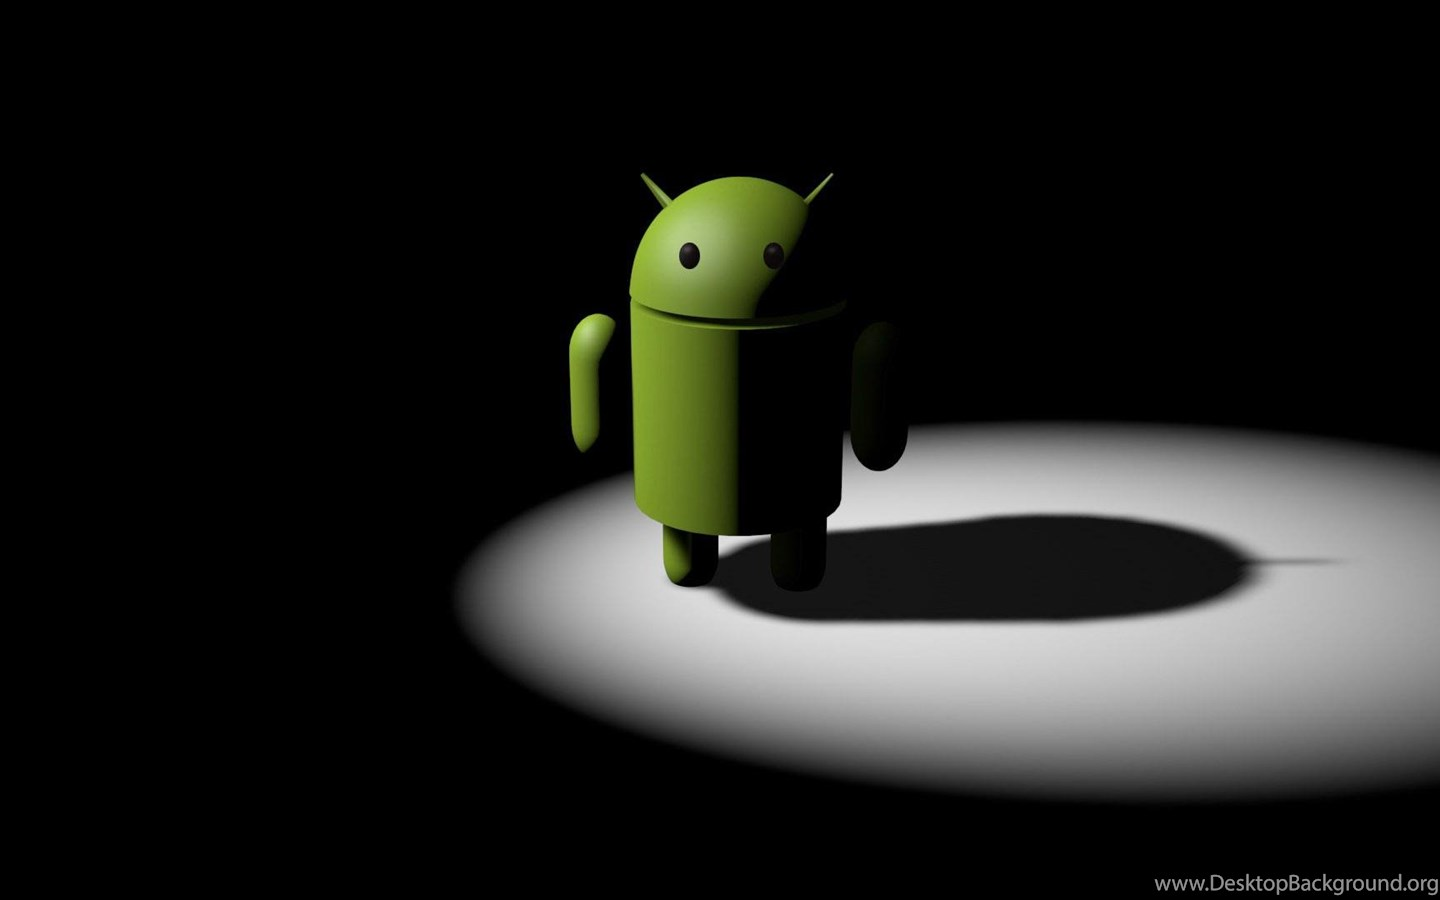 Android Phone Wallpapers 3d Hd Wallpapers Desktop Background